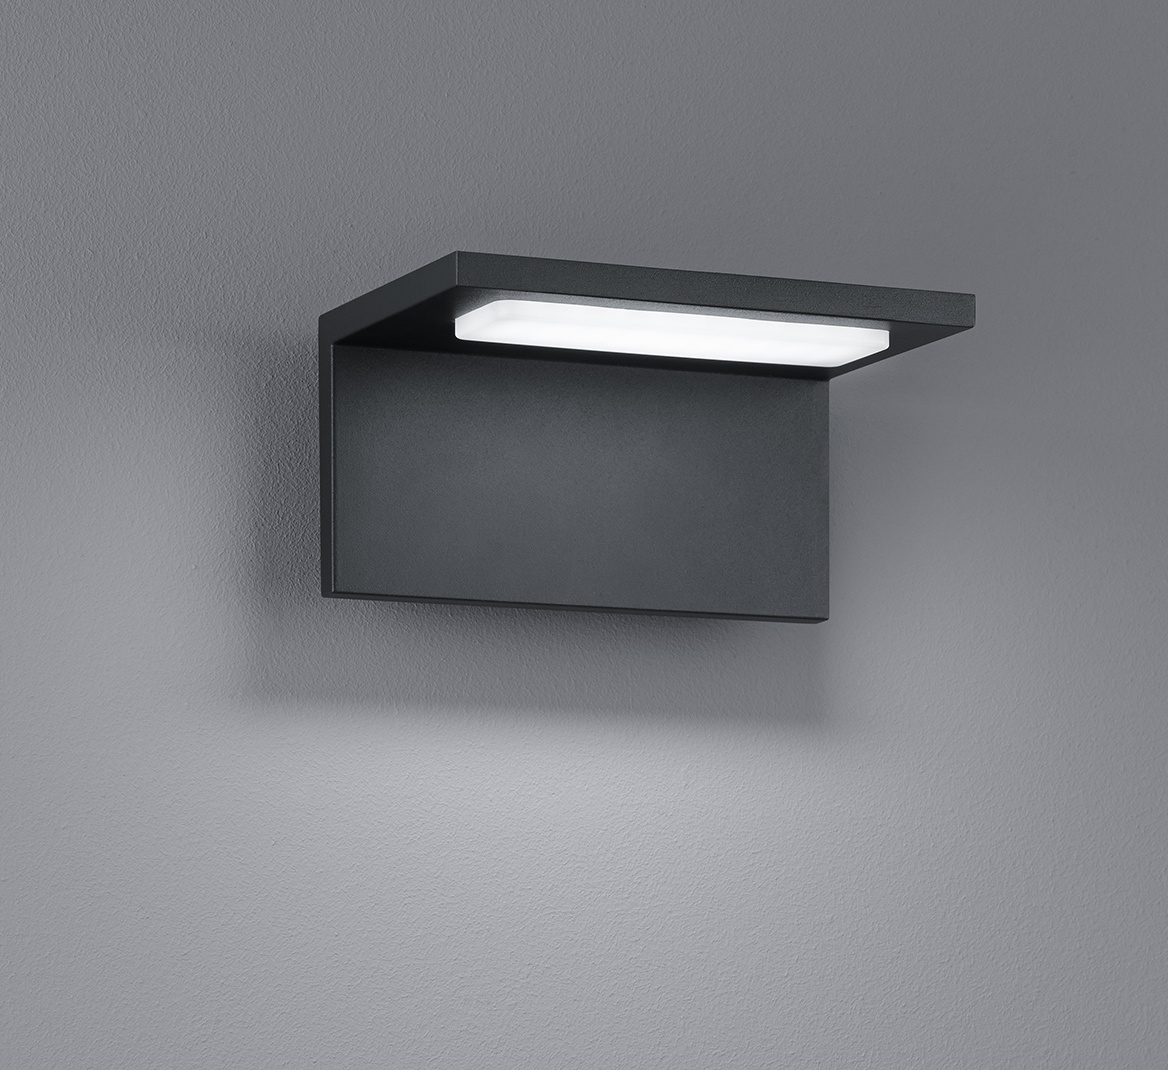 LED-seinävalaisin Trave 170x130x85 mm antrasiitti